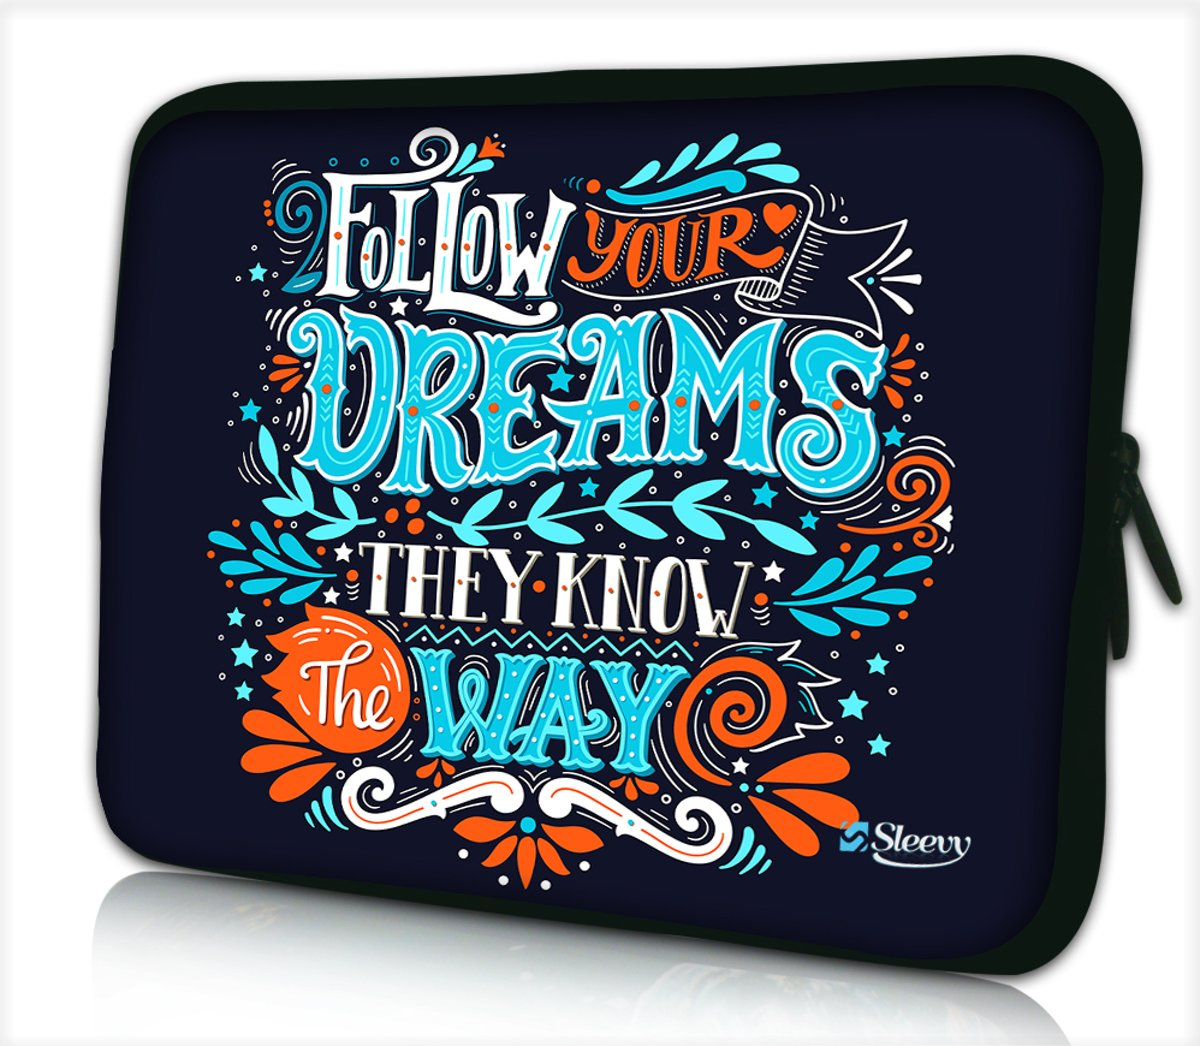 Tablet hoes / laptophoes 10,1 inch dreams - Sleevy - laptop sleeve - tablet sleeve